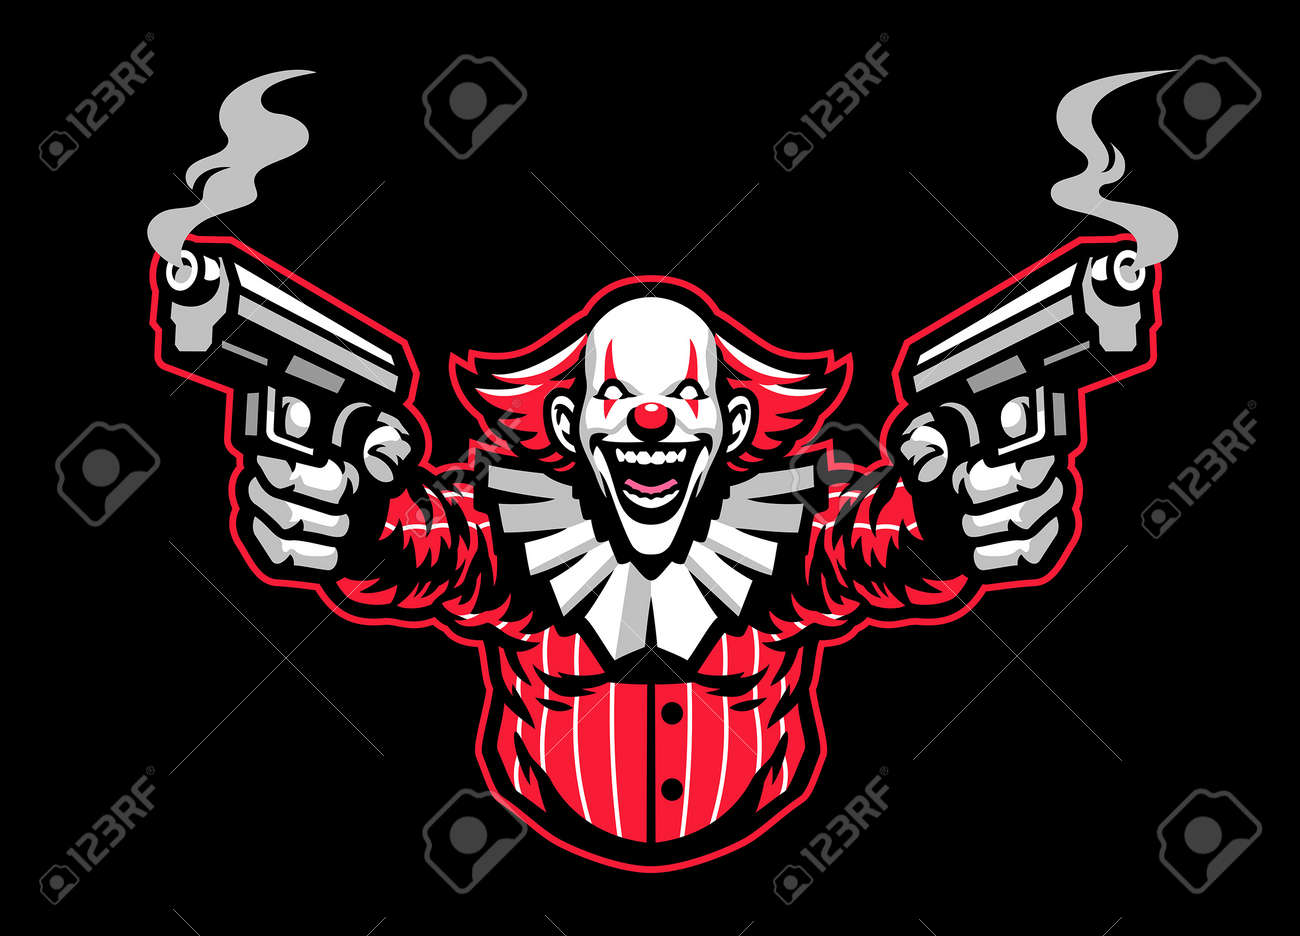 Scary look clown mascot character with the guns - 169099660